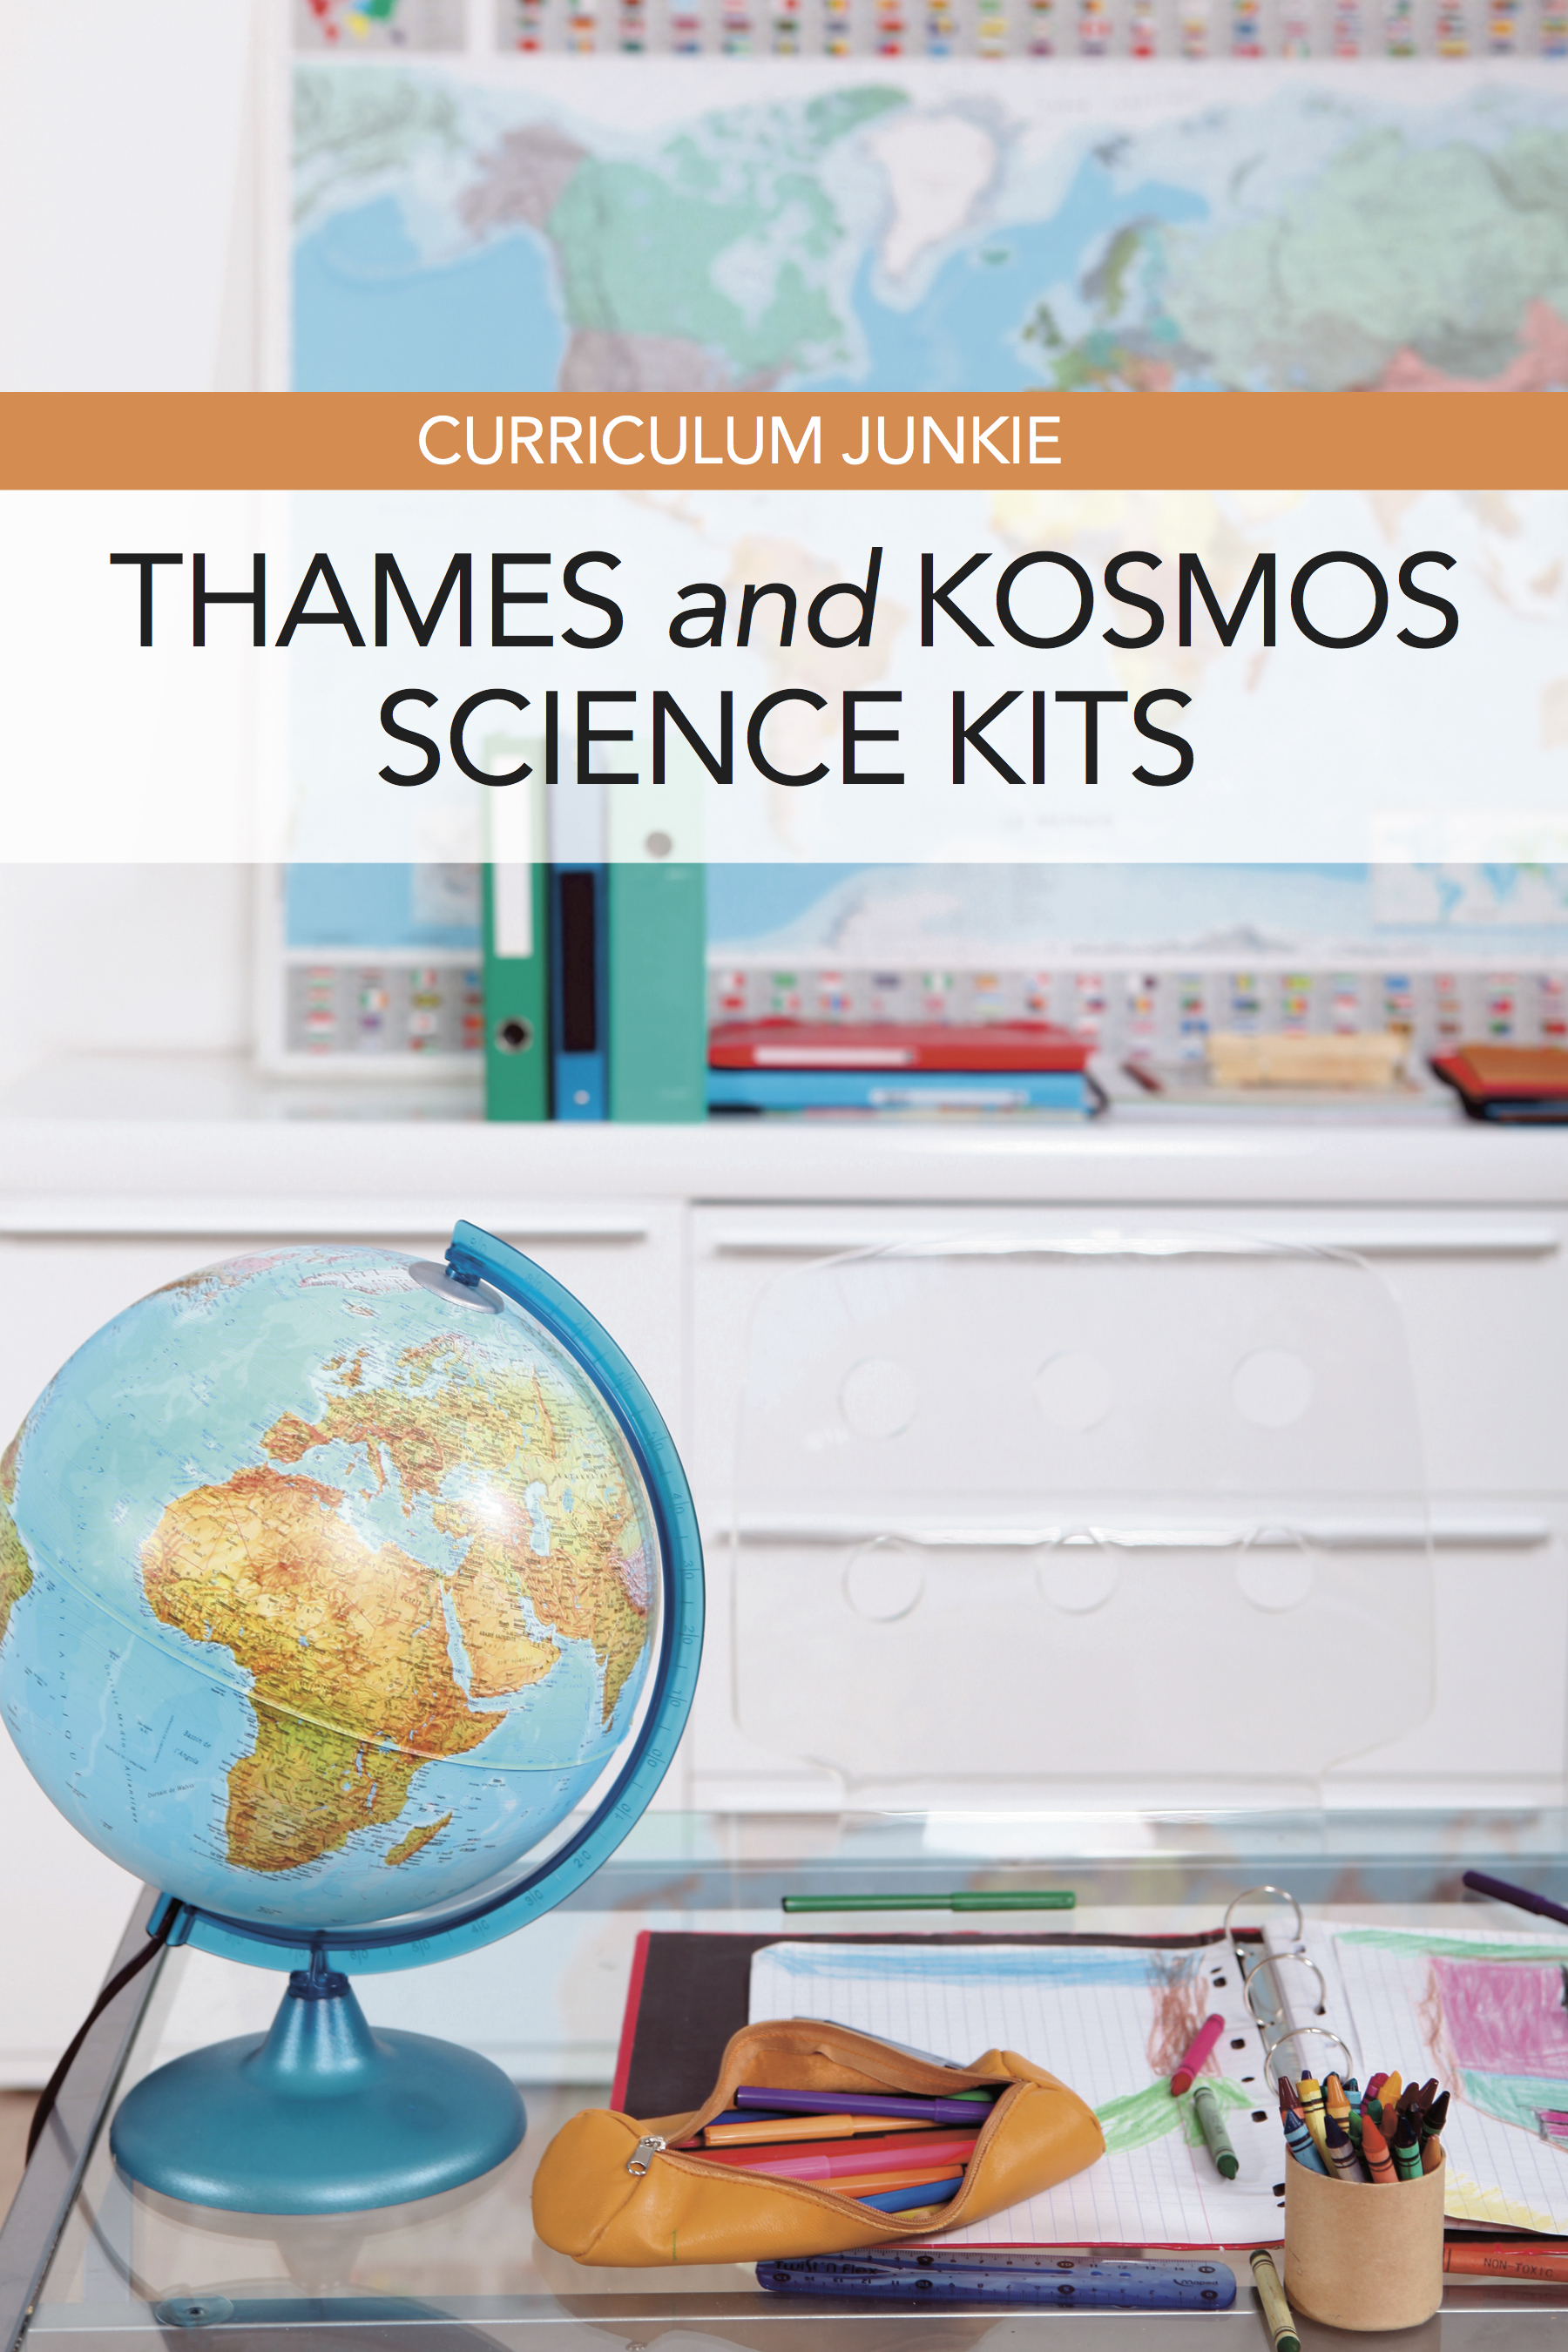 Homeschool science kits: These experiment science kits from Thames & Cosmos would be great for elementary and middle school science activities.